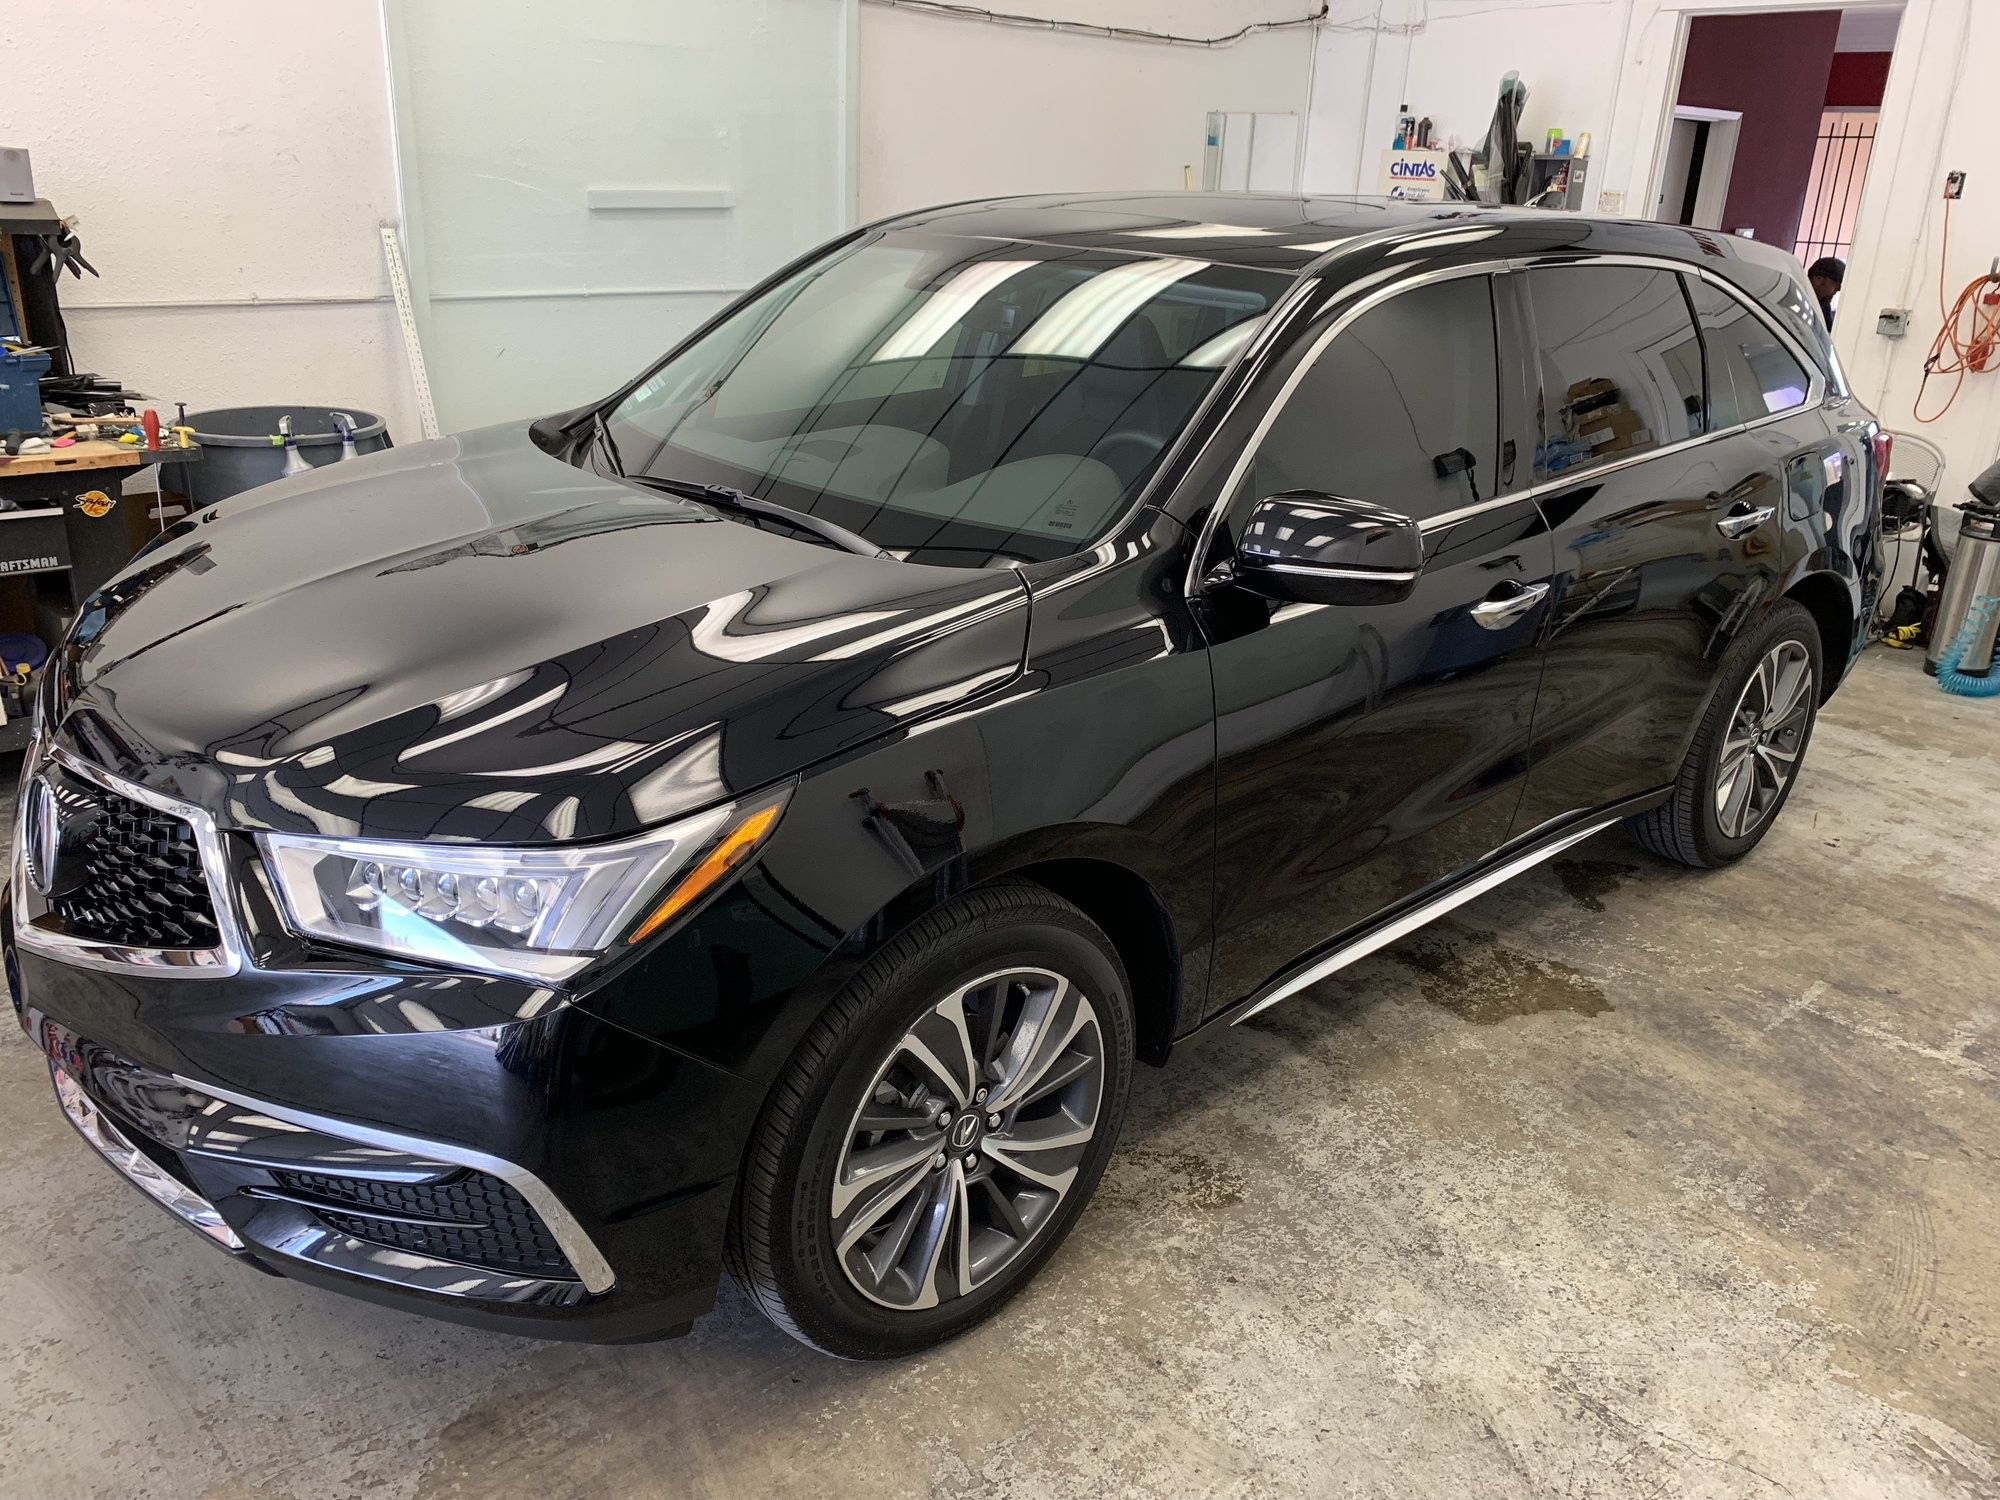 Mdx Prices Paid And Deals Acurazine Acura Enthusiast munity